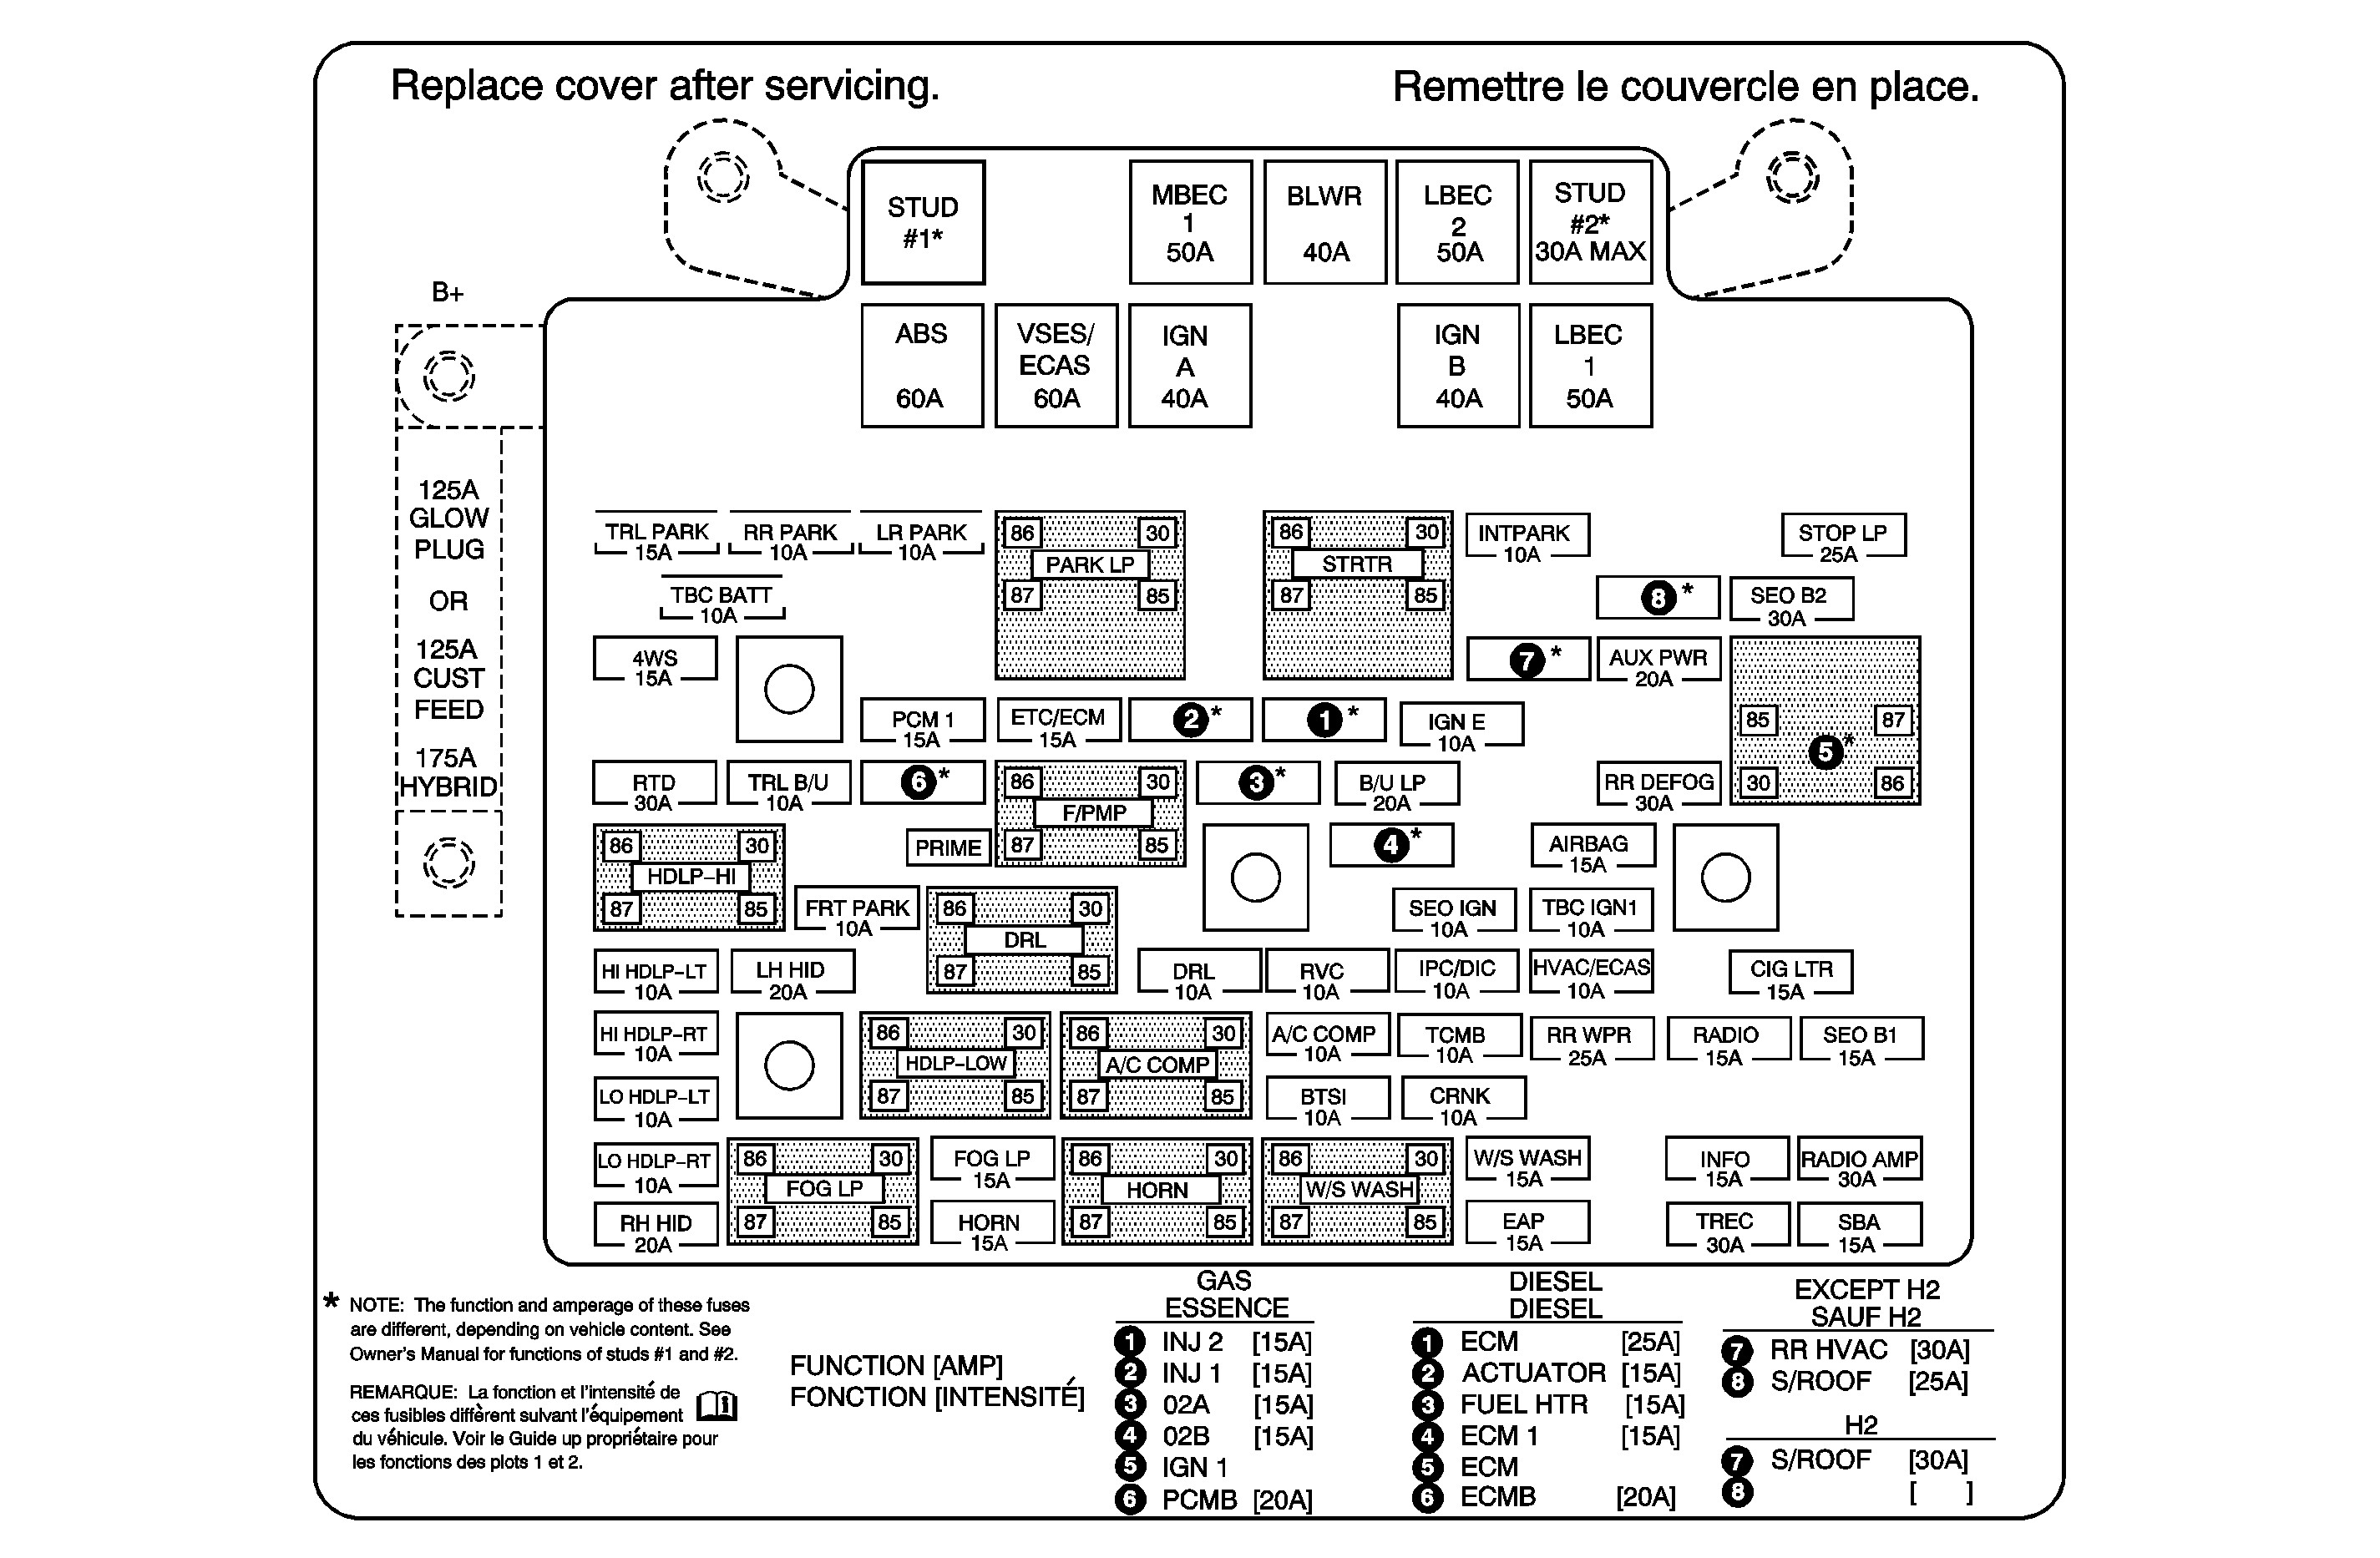 1999 chevy silverado fuse box diagram - wiring images 1999 chevy silverado fuse box